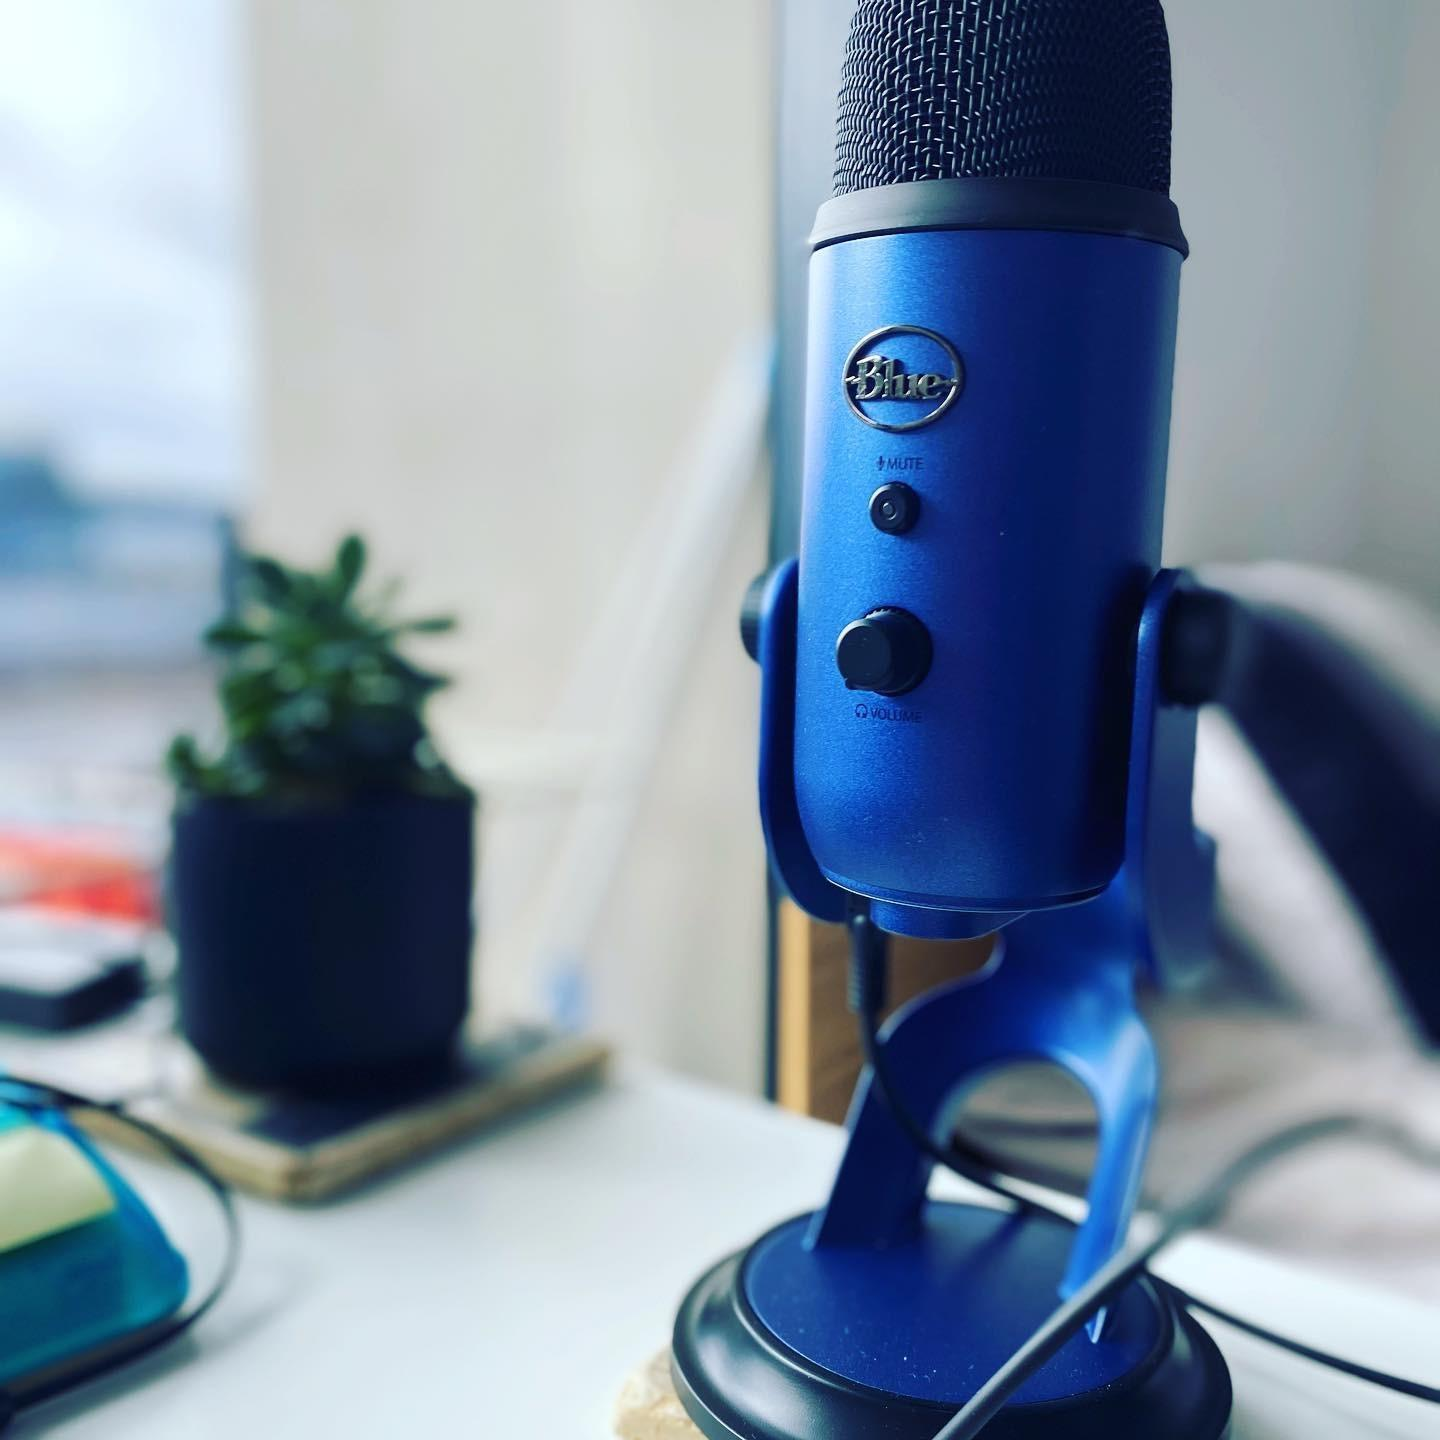 For Darren Krakowiak, the Founder of CRE Success, a blue Blue Yeti - which matches the corporate colours of CRE Success - was a no brainer when picking a podcast microphone.